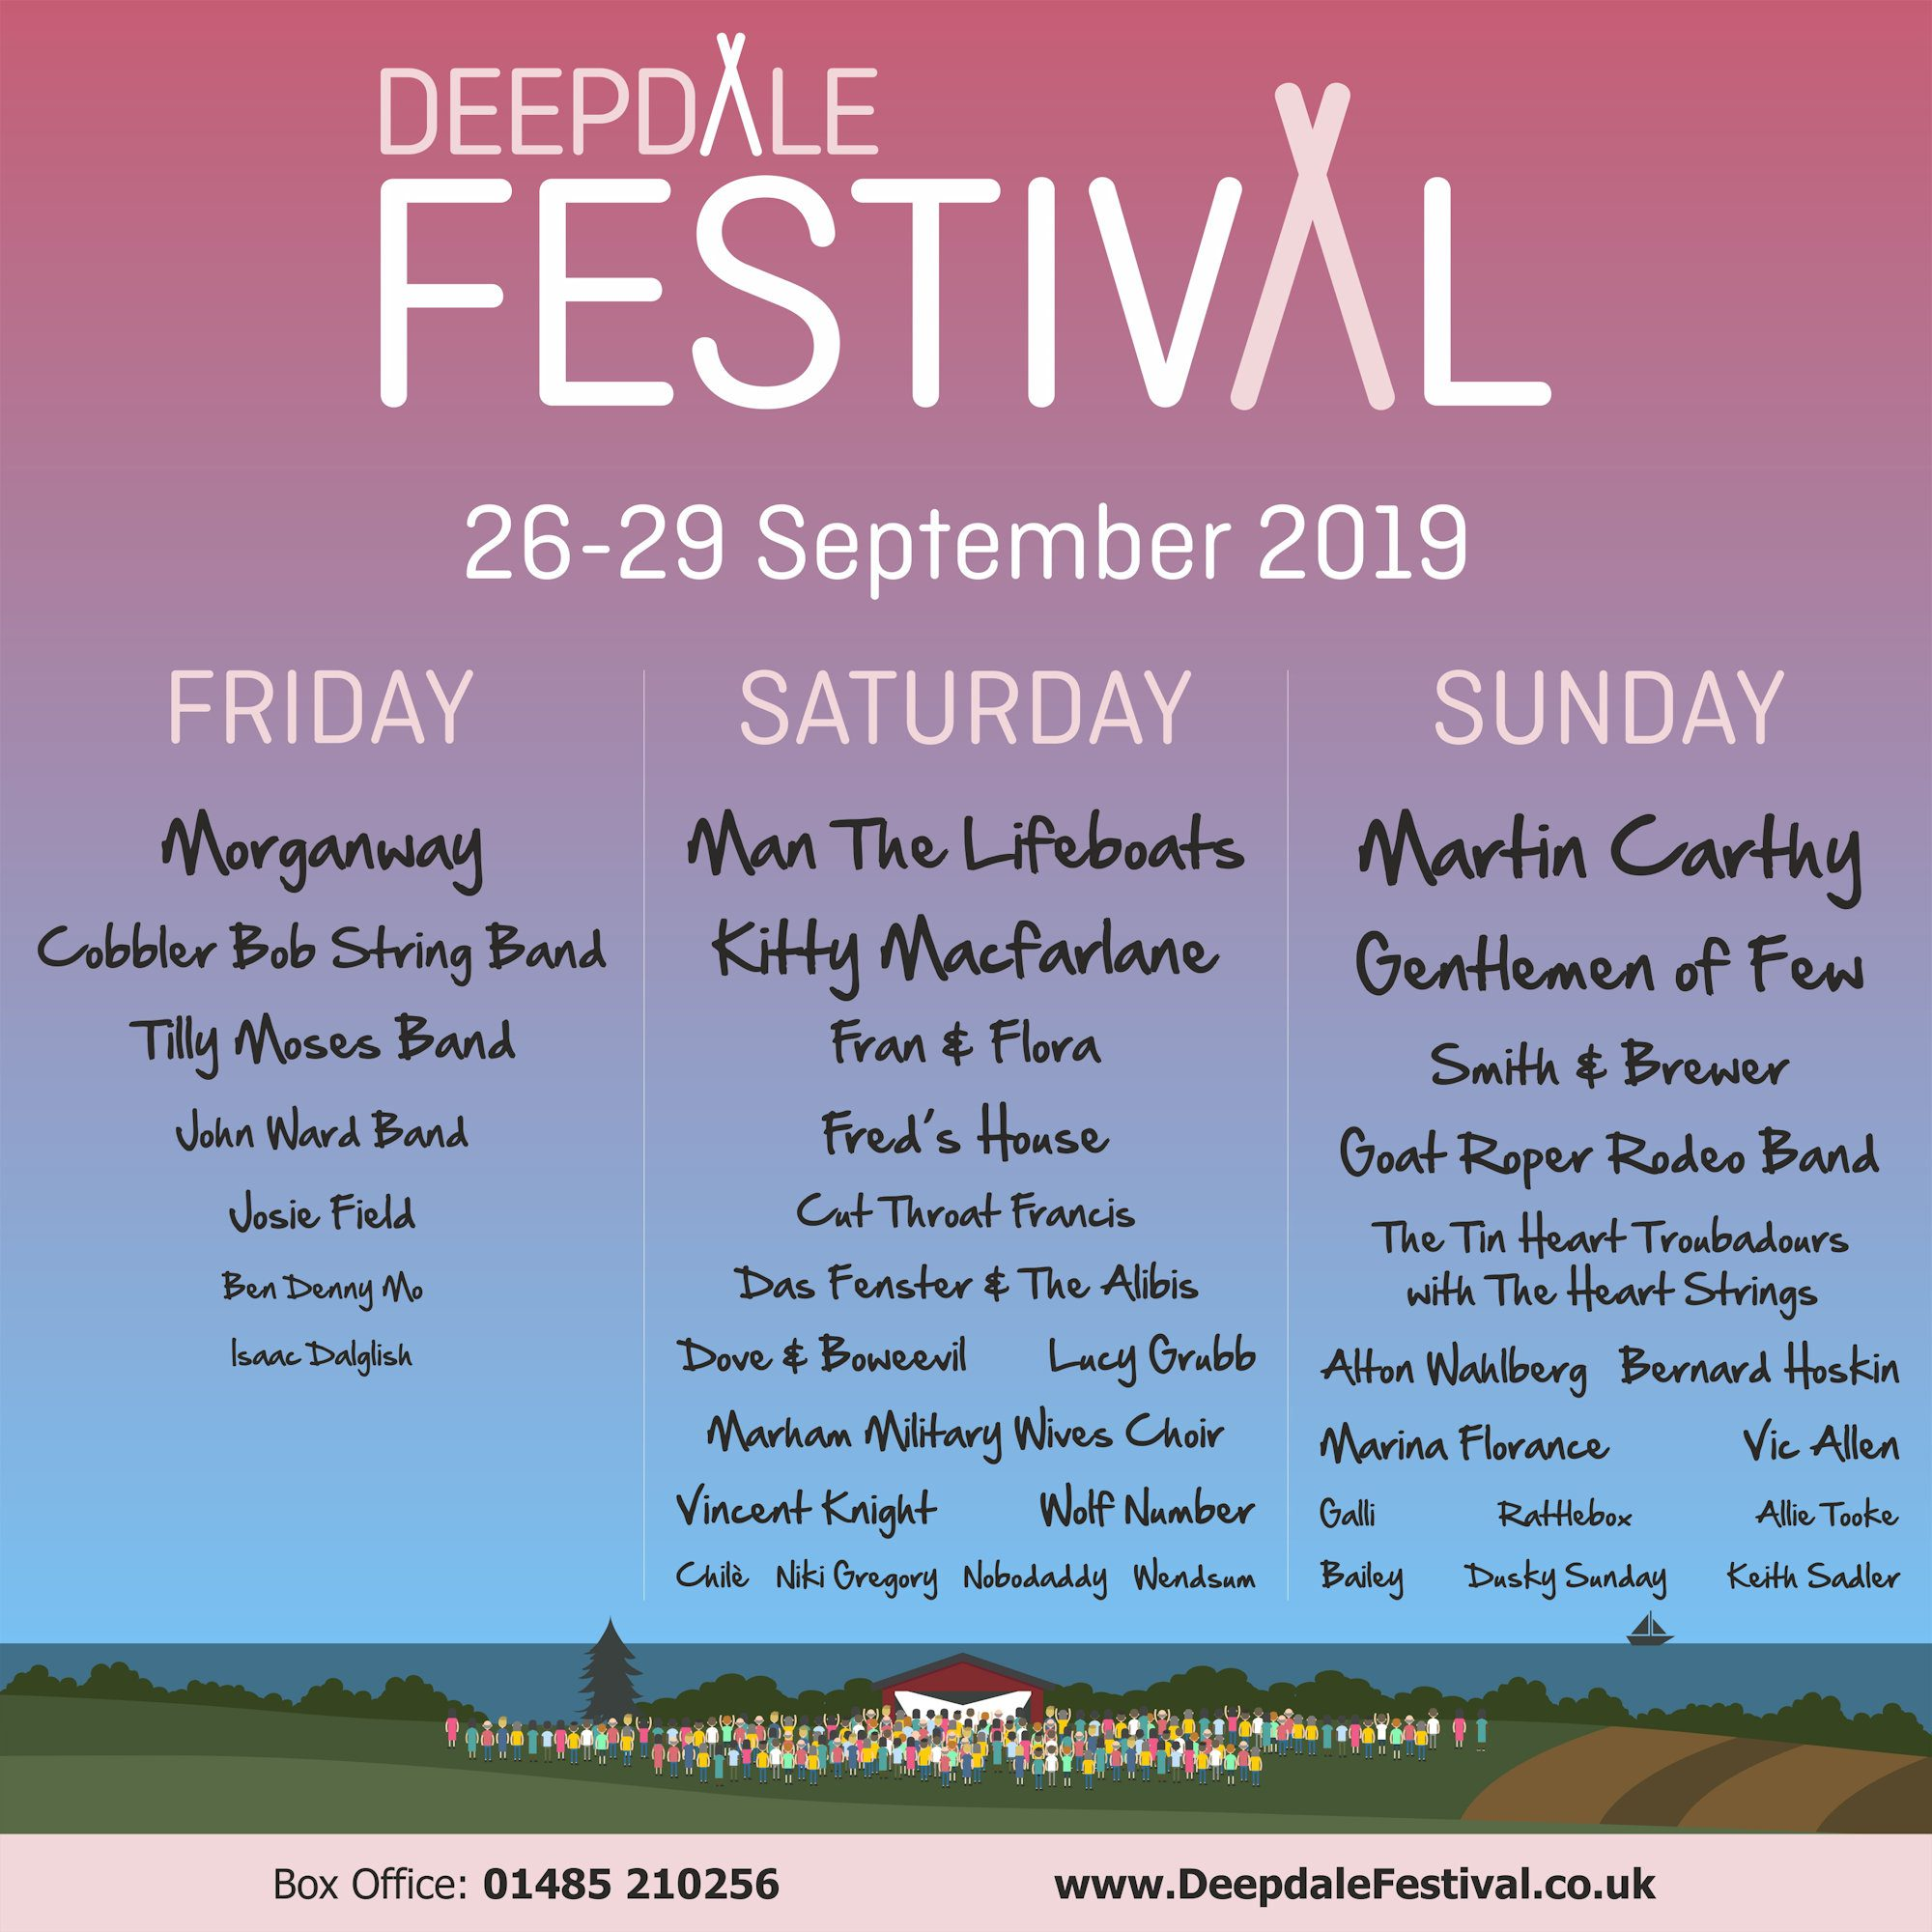 Deepdale Festival Poster Square 2019